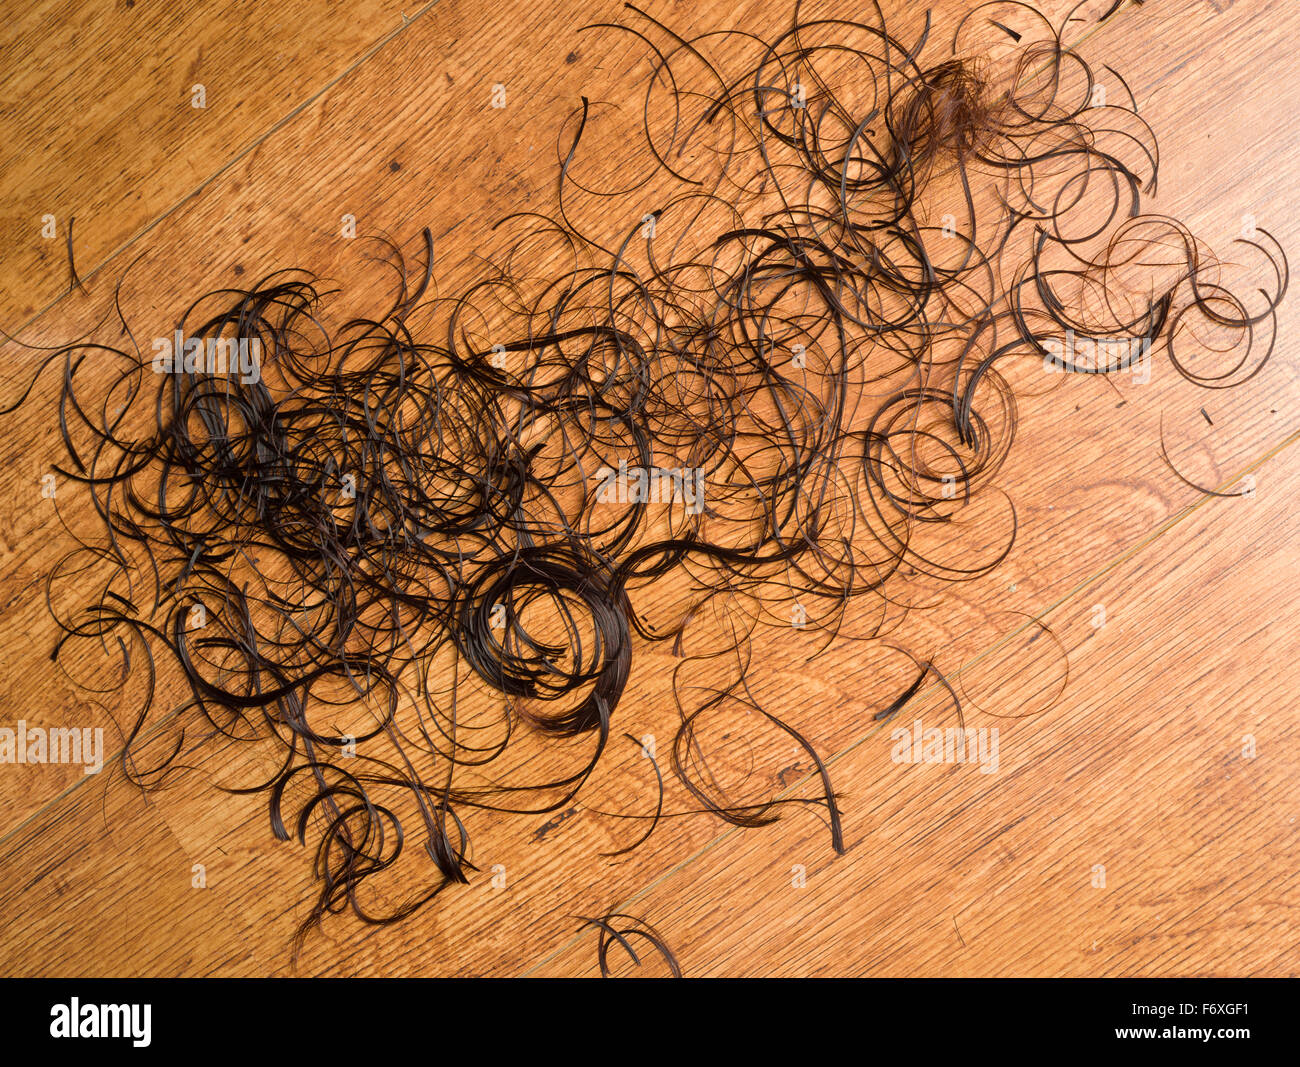 Hair clippings on a hairdressers floor. A womans cut brown hair on the floor of a hairdressing salon. - Stock Image